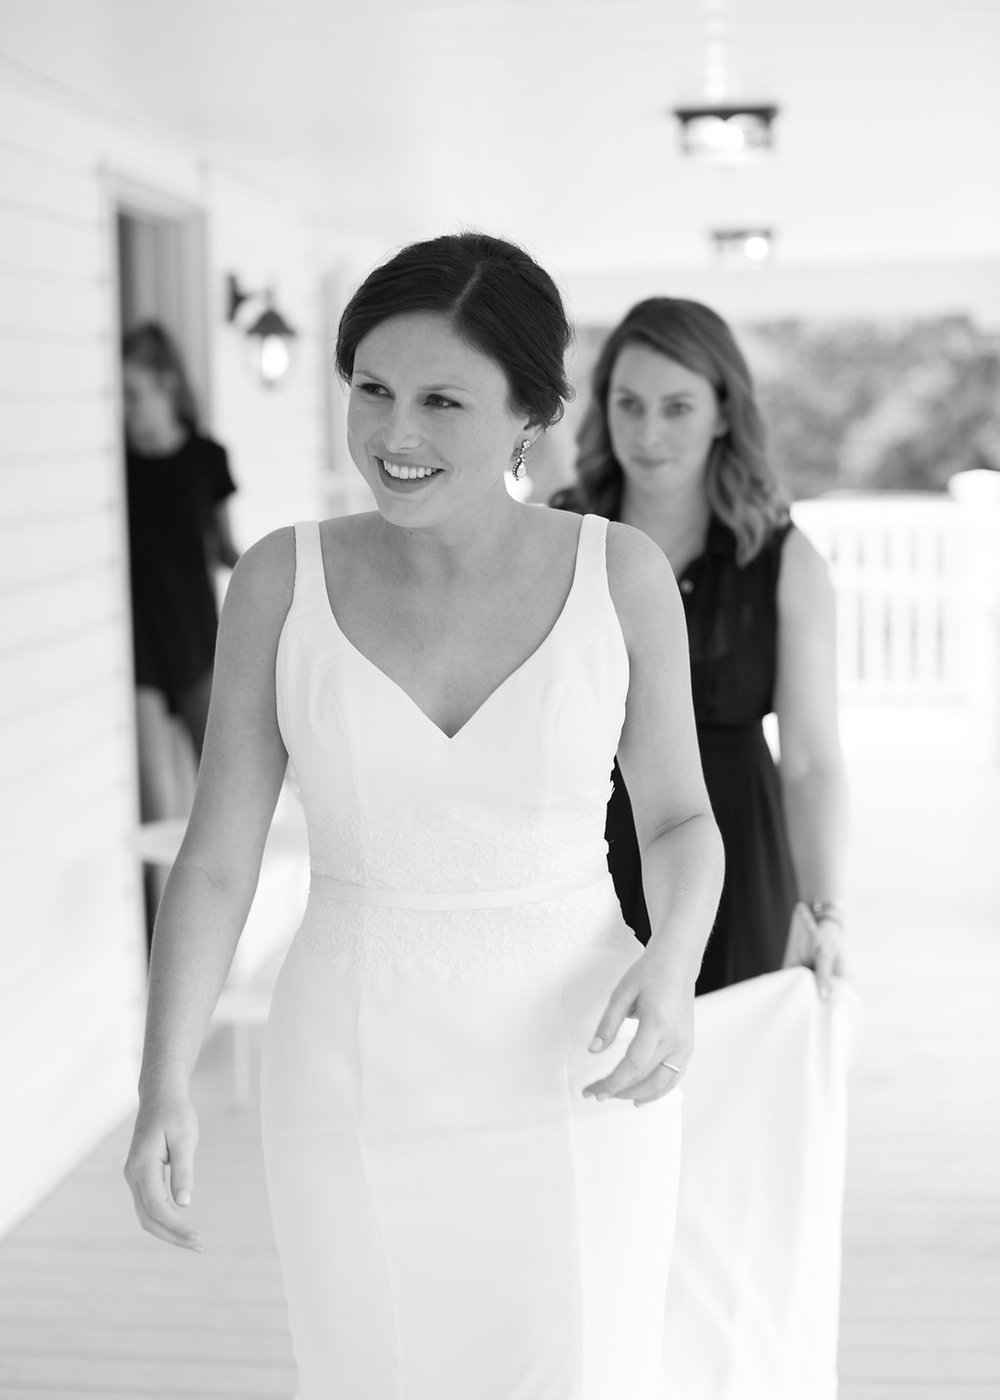 Katie & Edward | Handley Breaux Designs | Colorbox Photography | Alabama Weddings | Birmingham Weddings | Birmingham Bride | Southern Wedding Planner | Alabama Wedding Planner | Classic Wedding